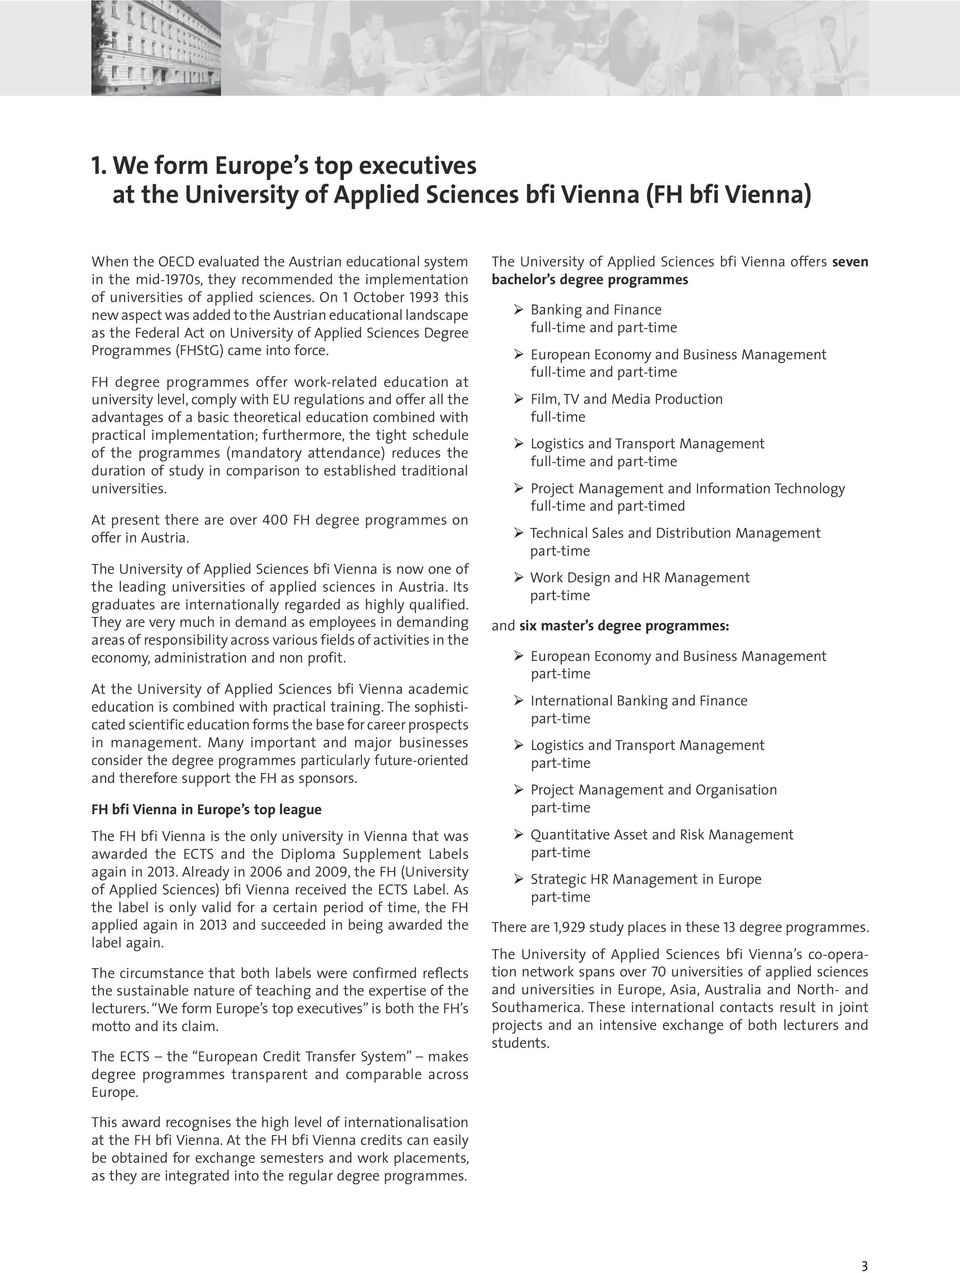 On 1 October 1993 this new aspect was added to the Austrian educational landscape as the Federal Act on University of Applied Sciences Degree Programmes (FHStG) came into force.